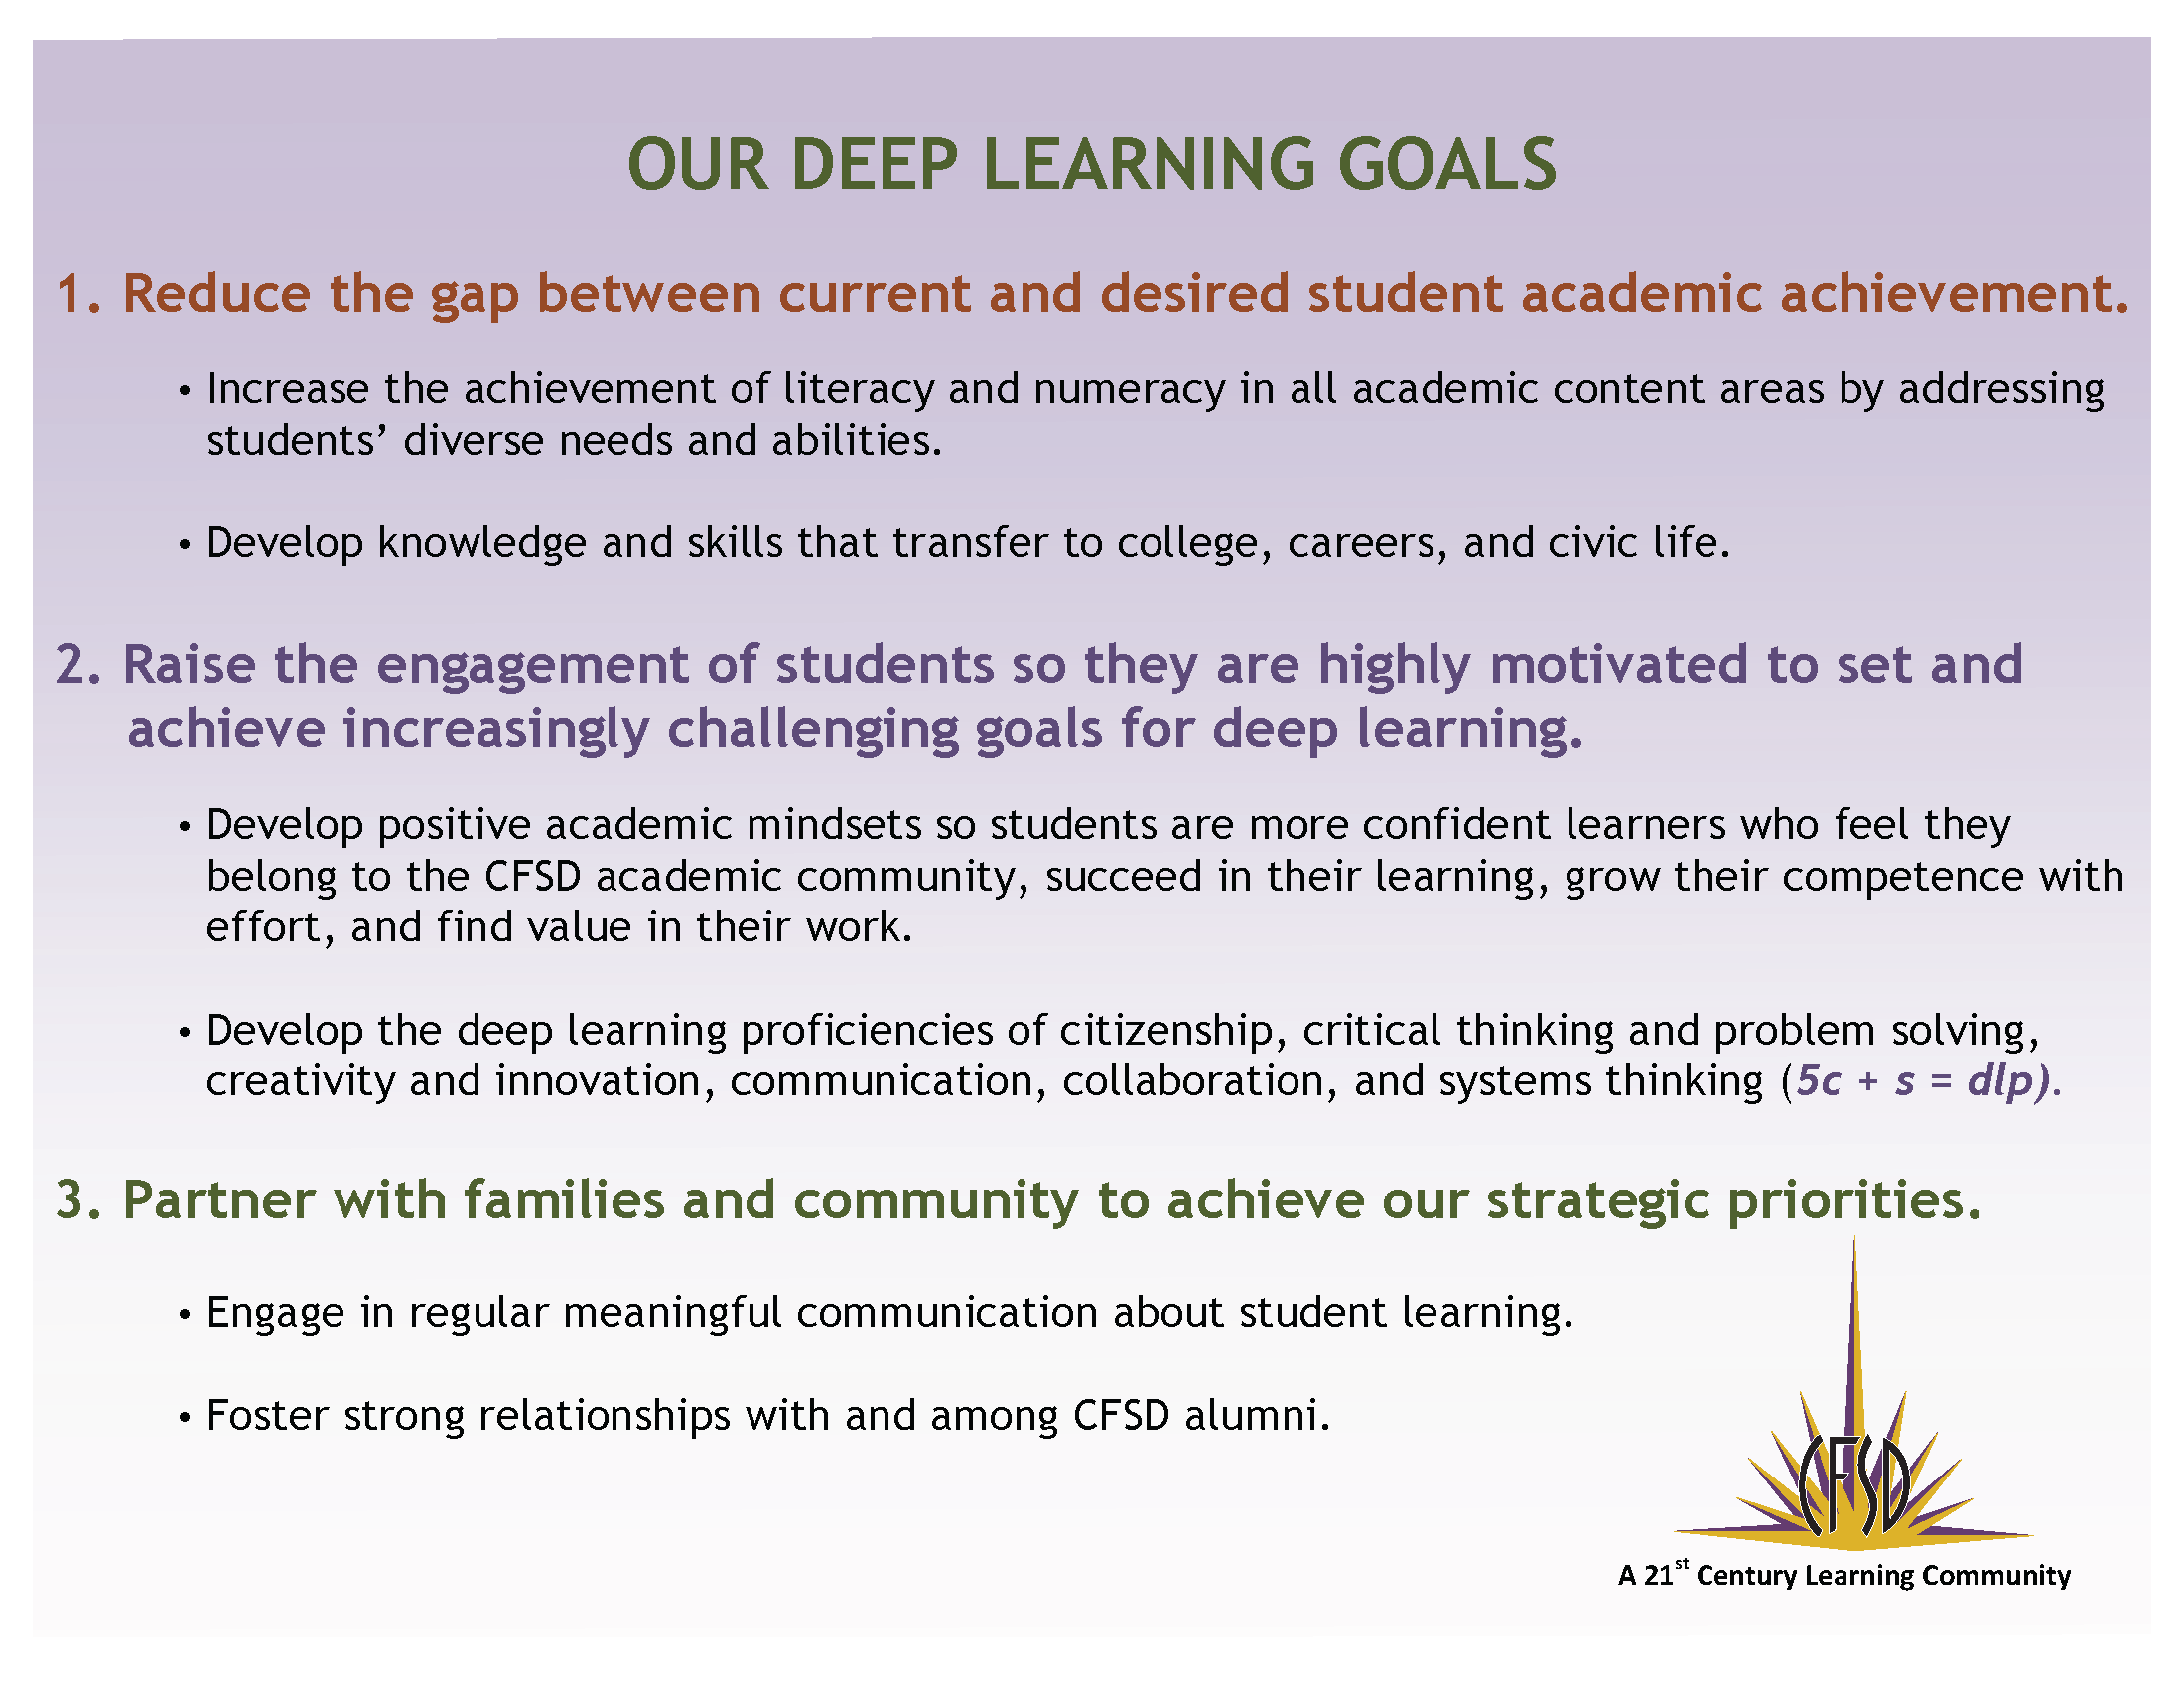 Our Deep Learning Goals